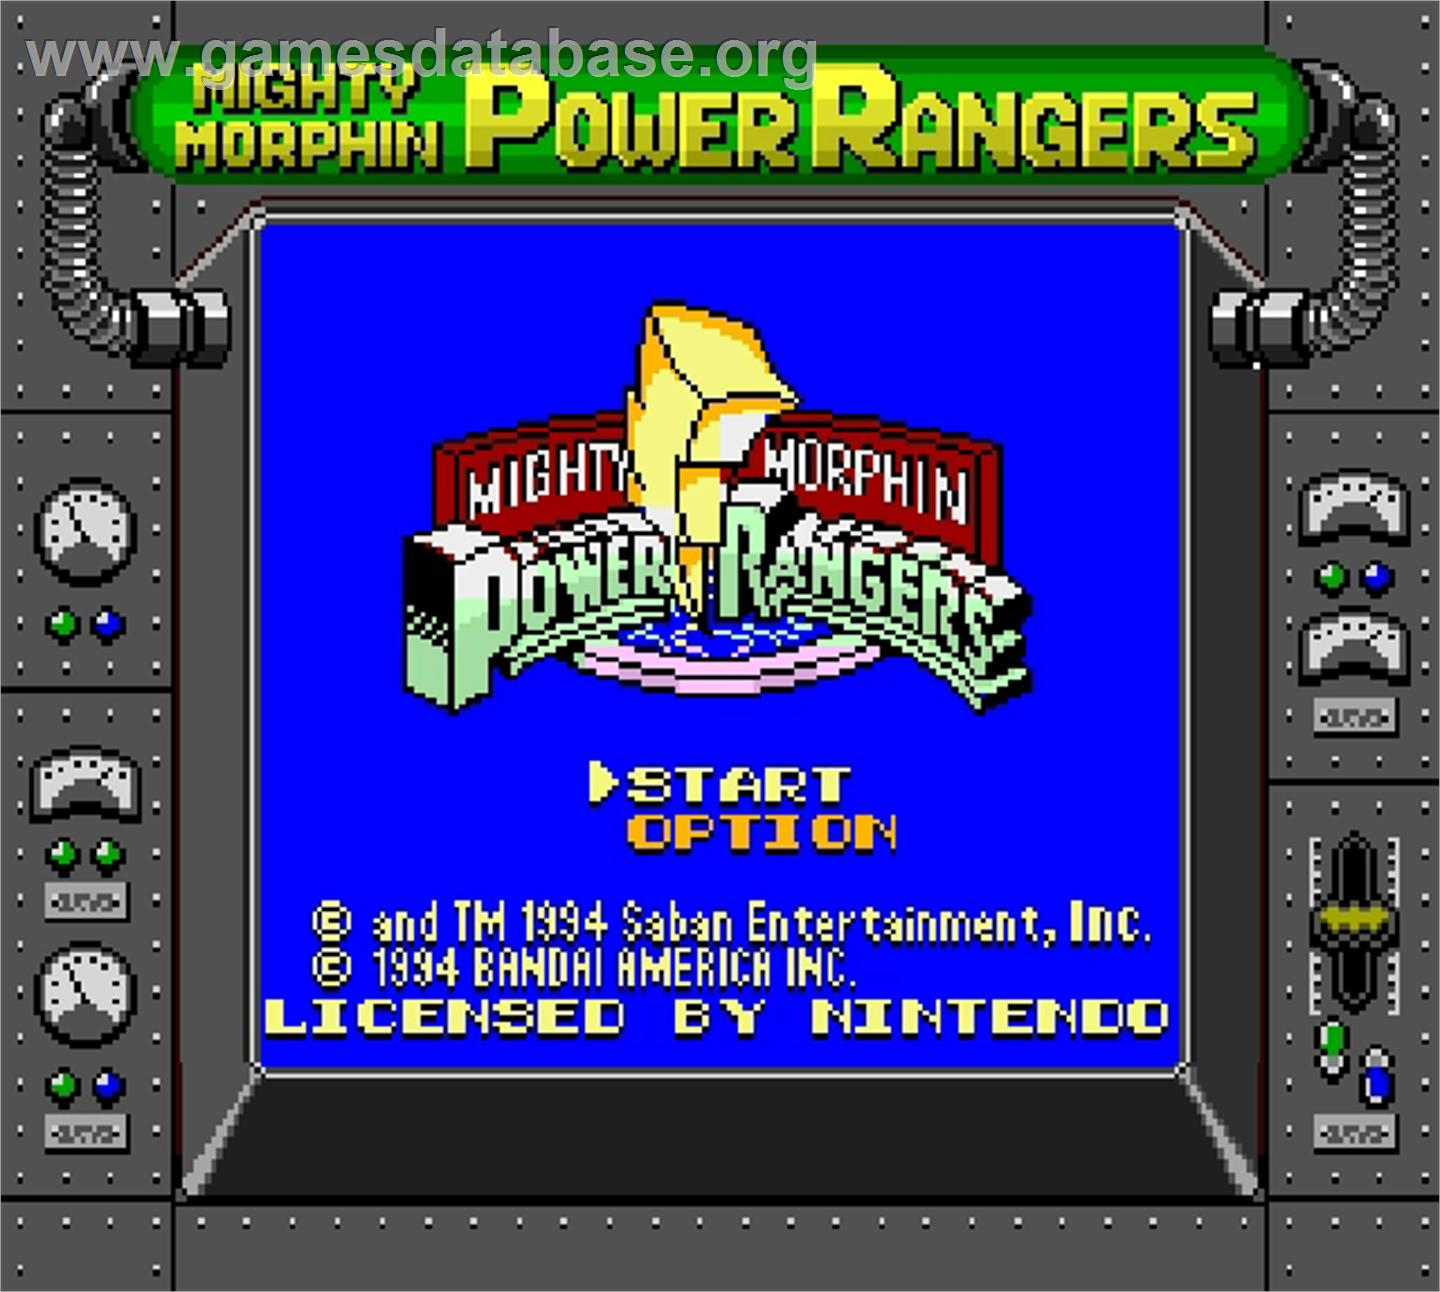 Mighty Morphin Power Rangers - Nintendo Super Gameboy - Artwork - Title Screen